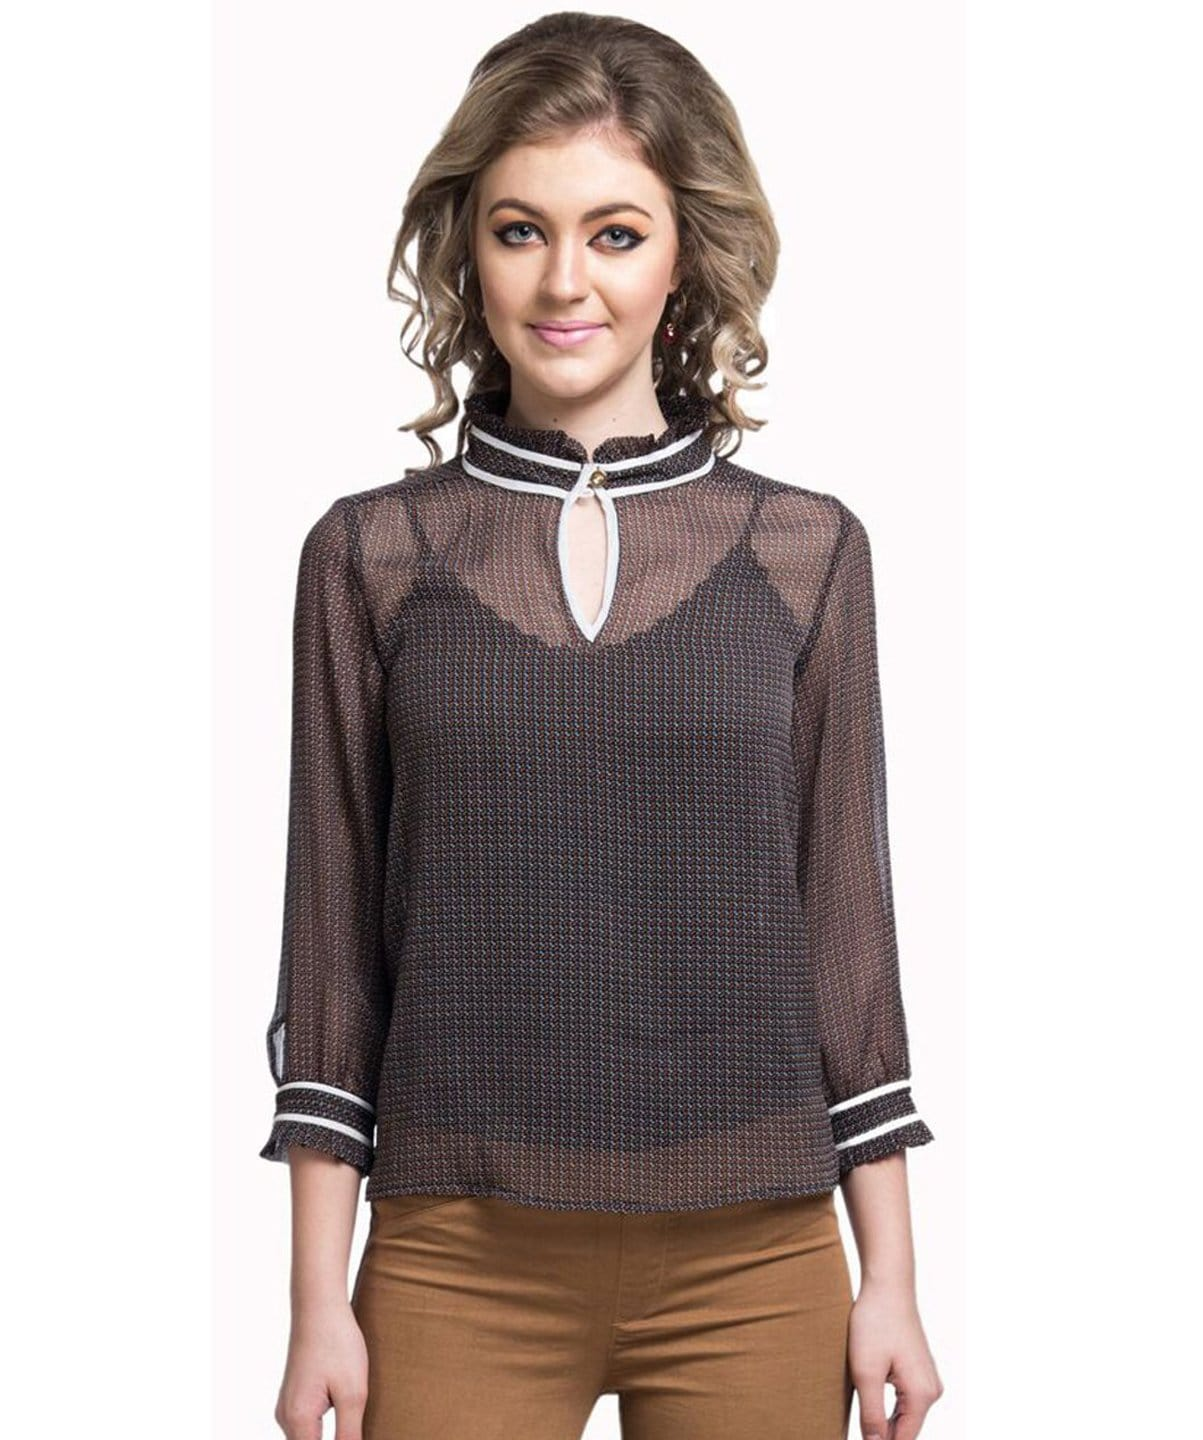 Solid Brown Casual Chiffon Top - Uptownie